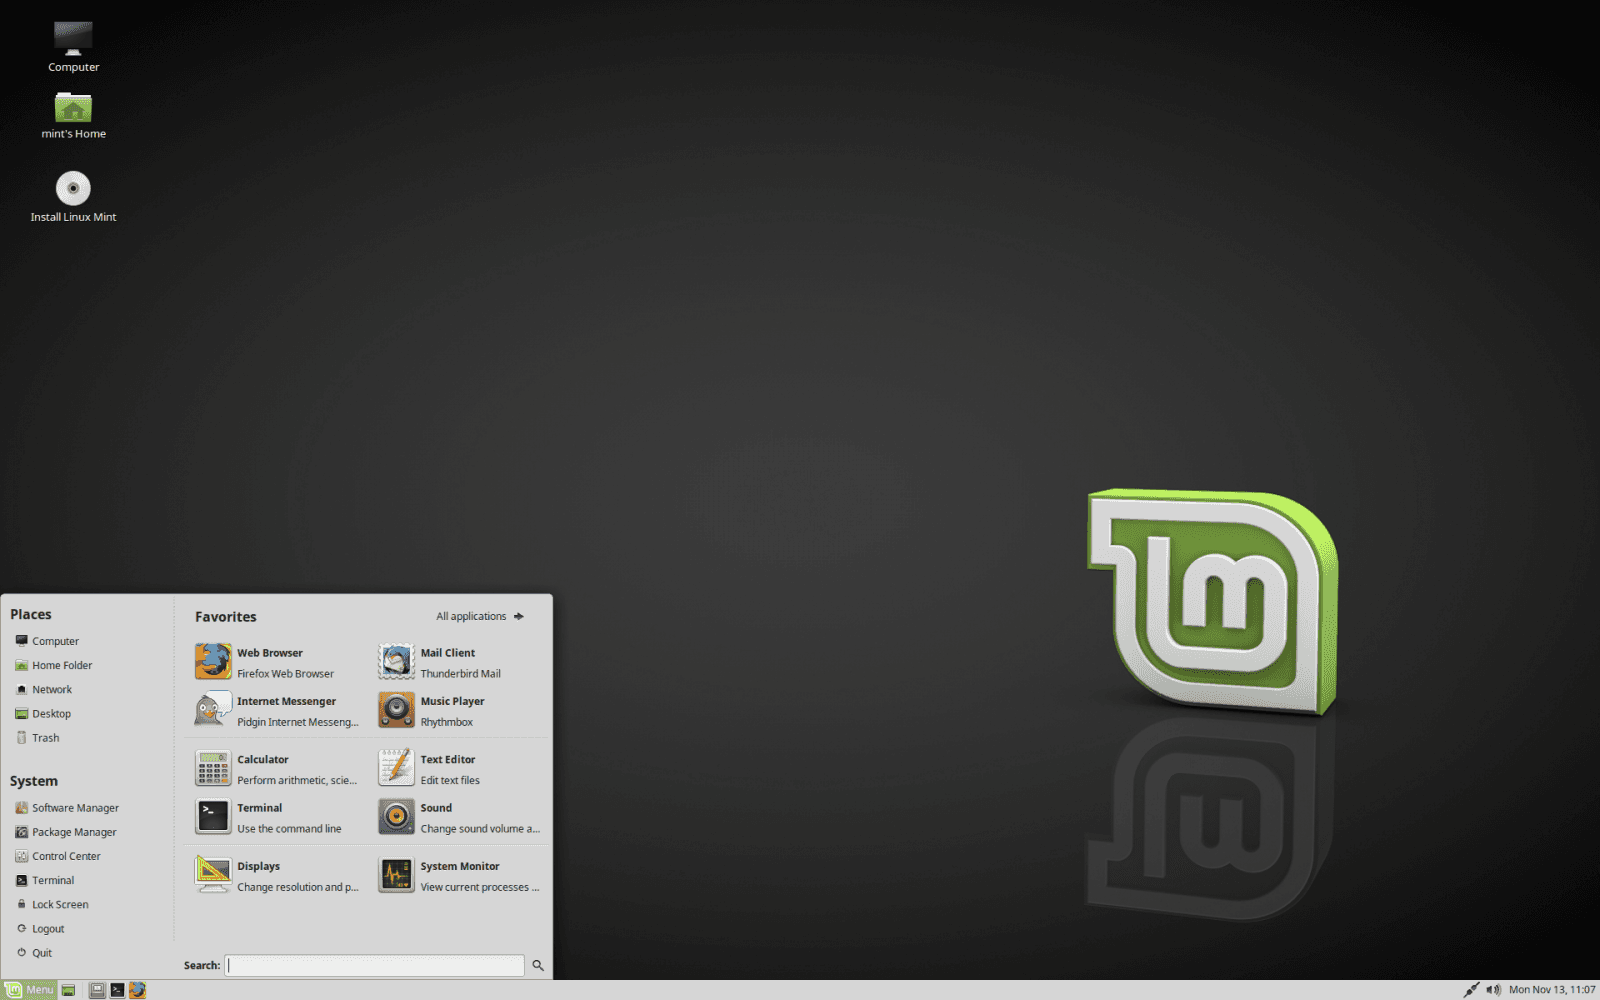 Linux Mint 18.3 MATE